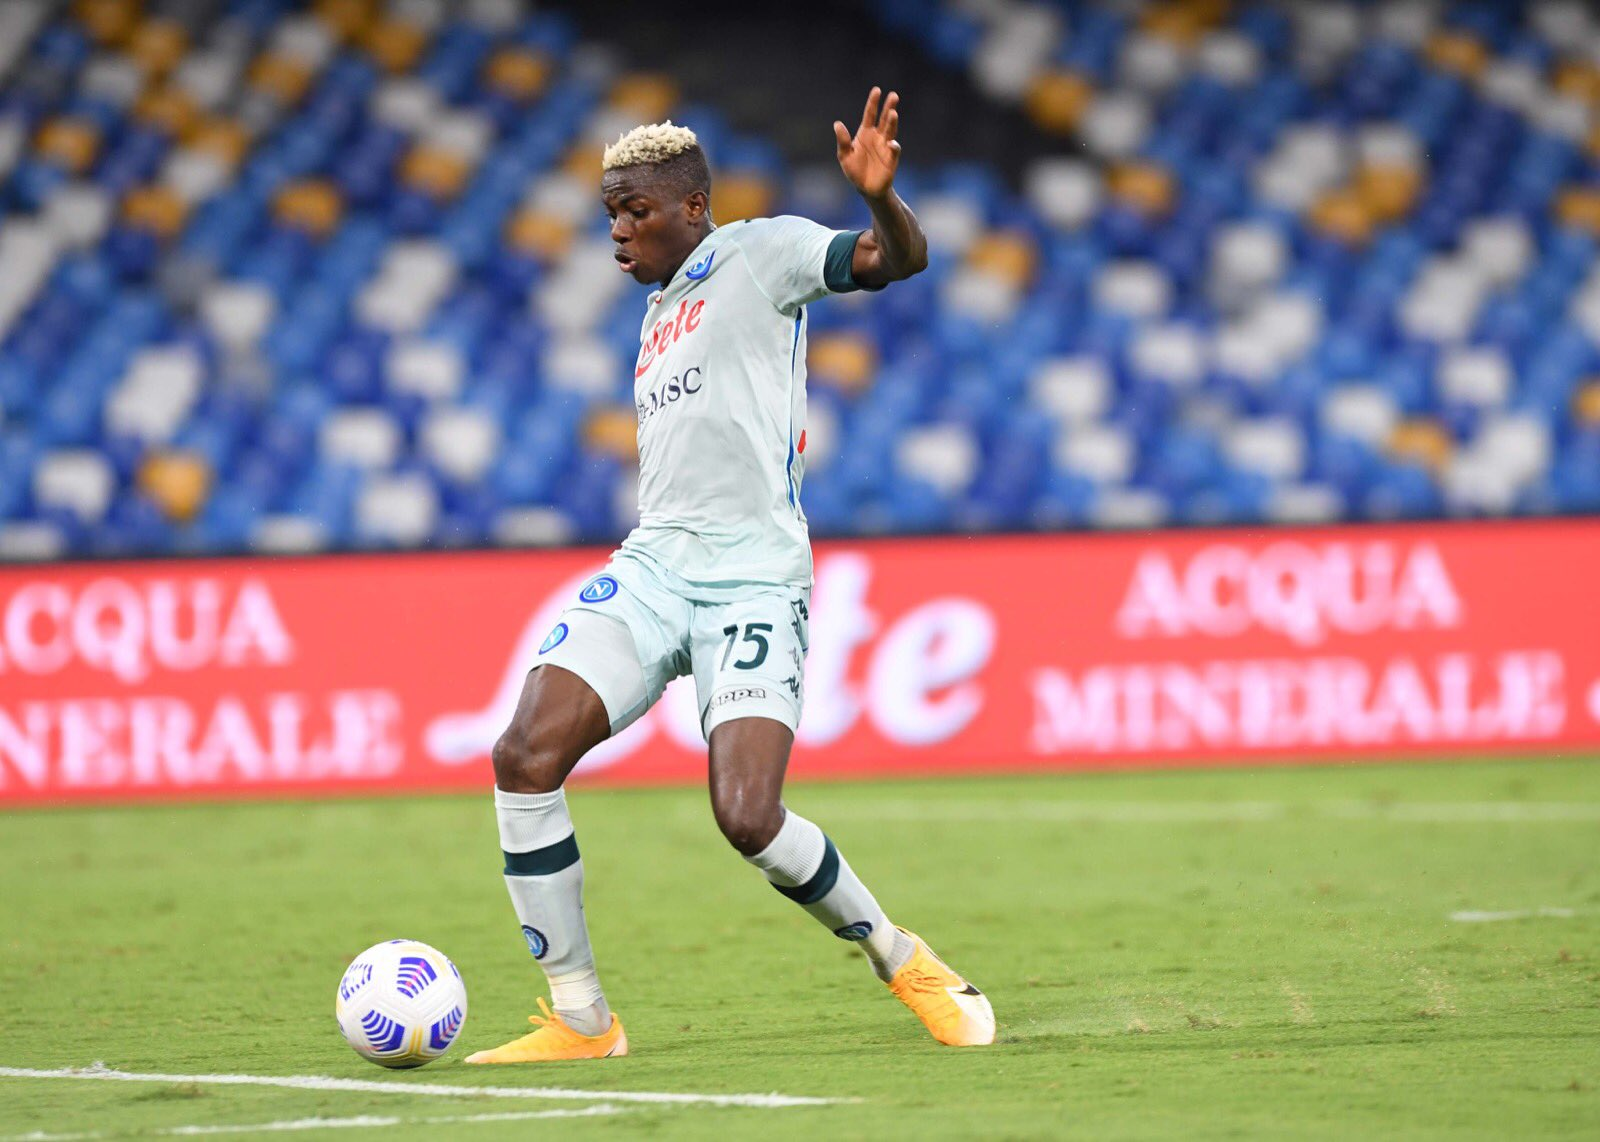 Osimhen Faces Huge Expectations As Napoli Clash With Parma In Serie A Opener Today